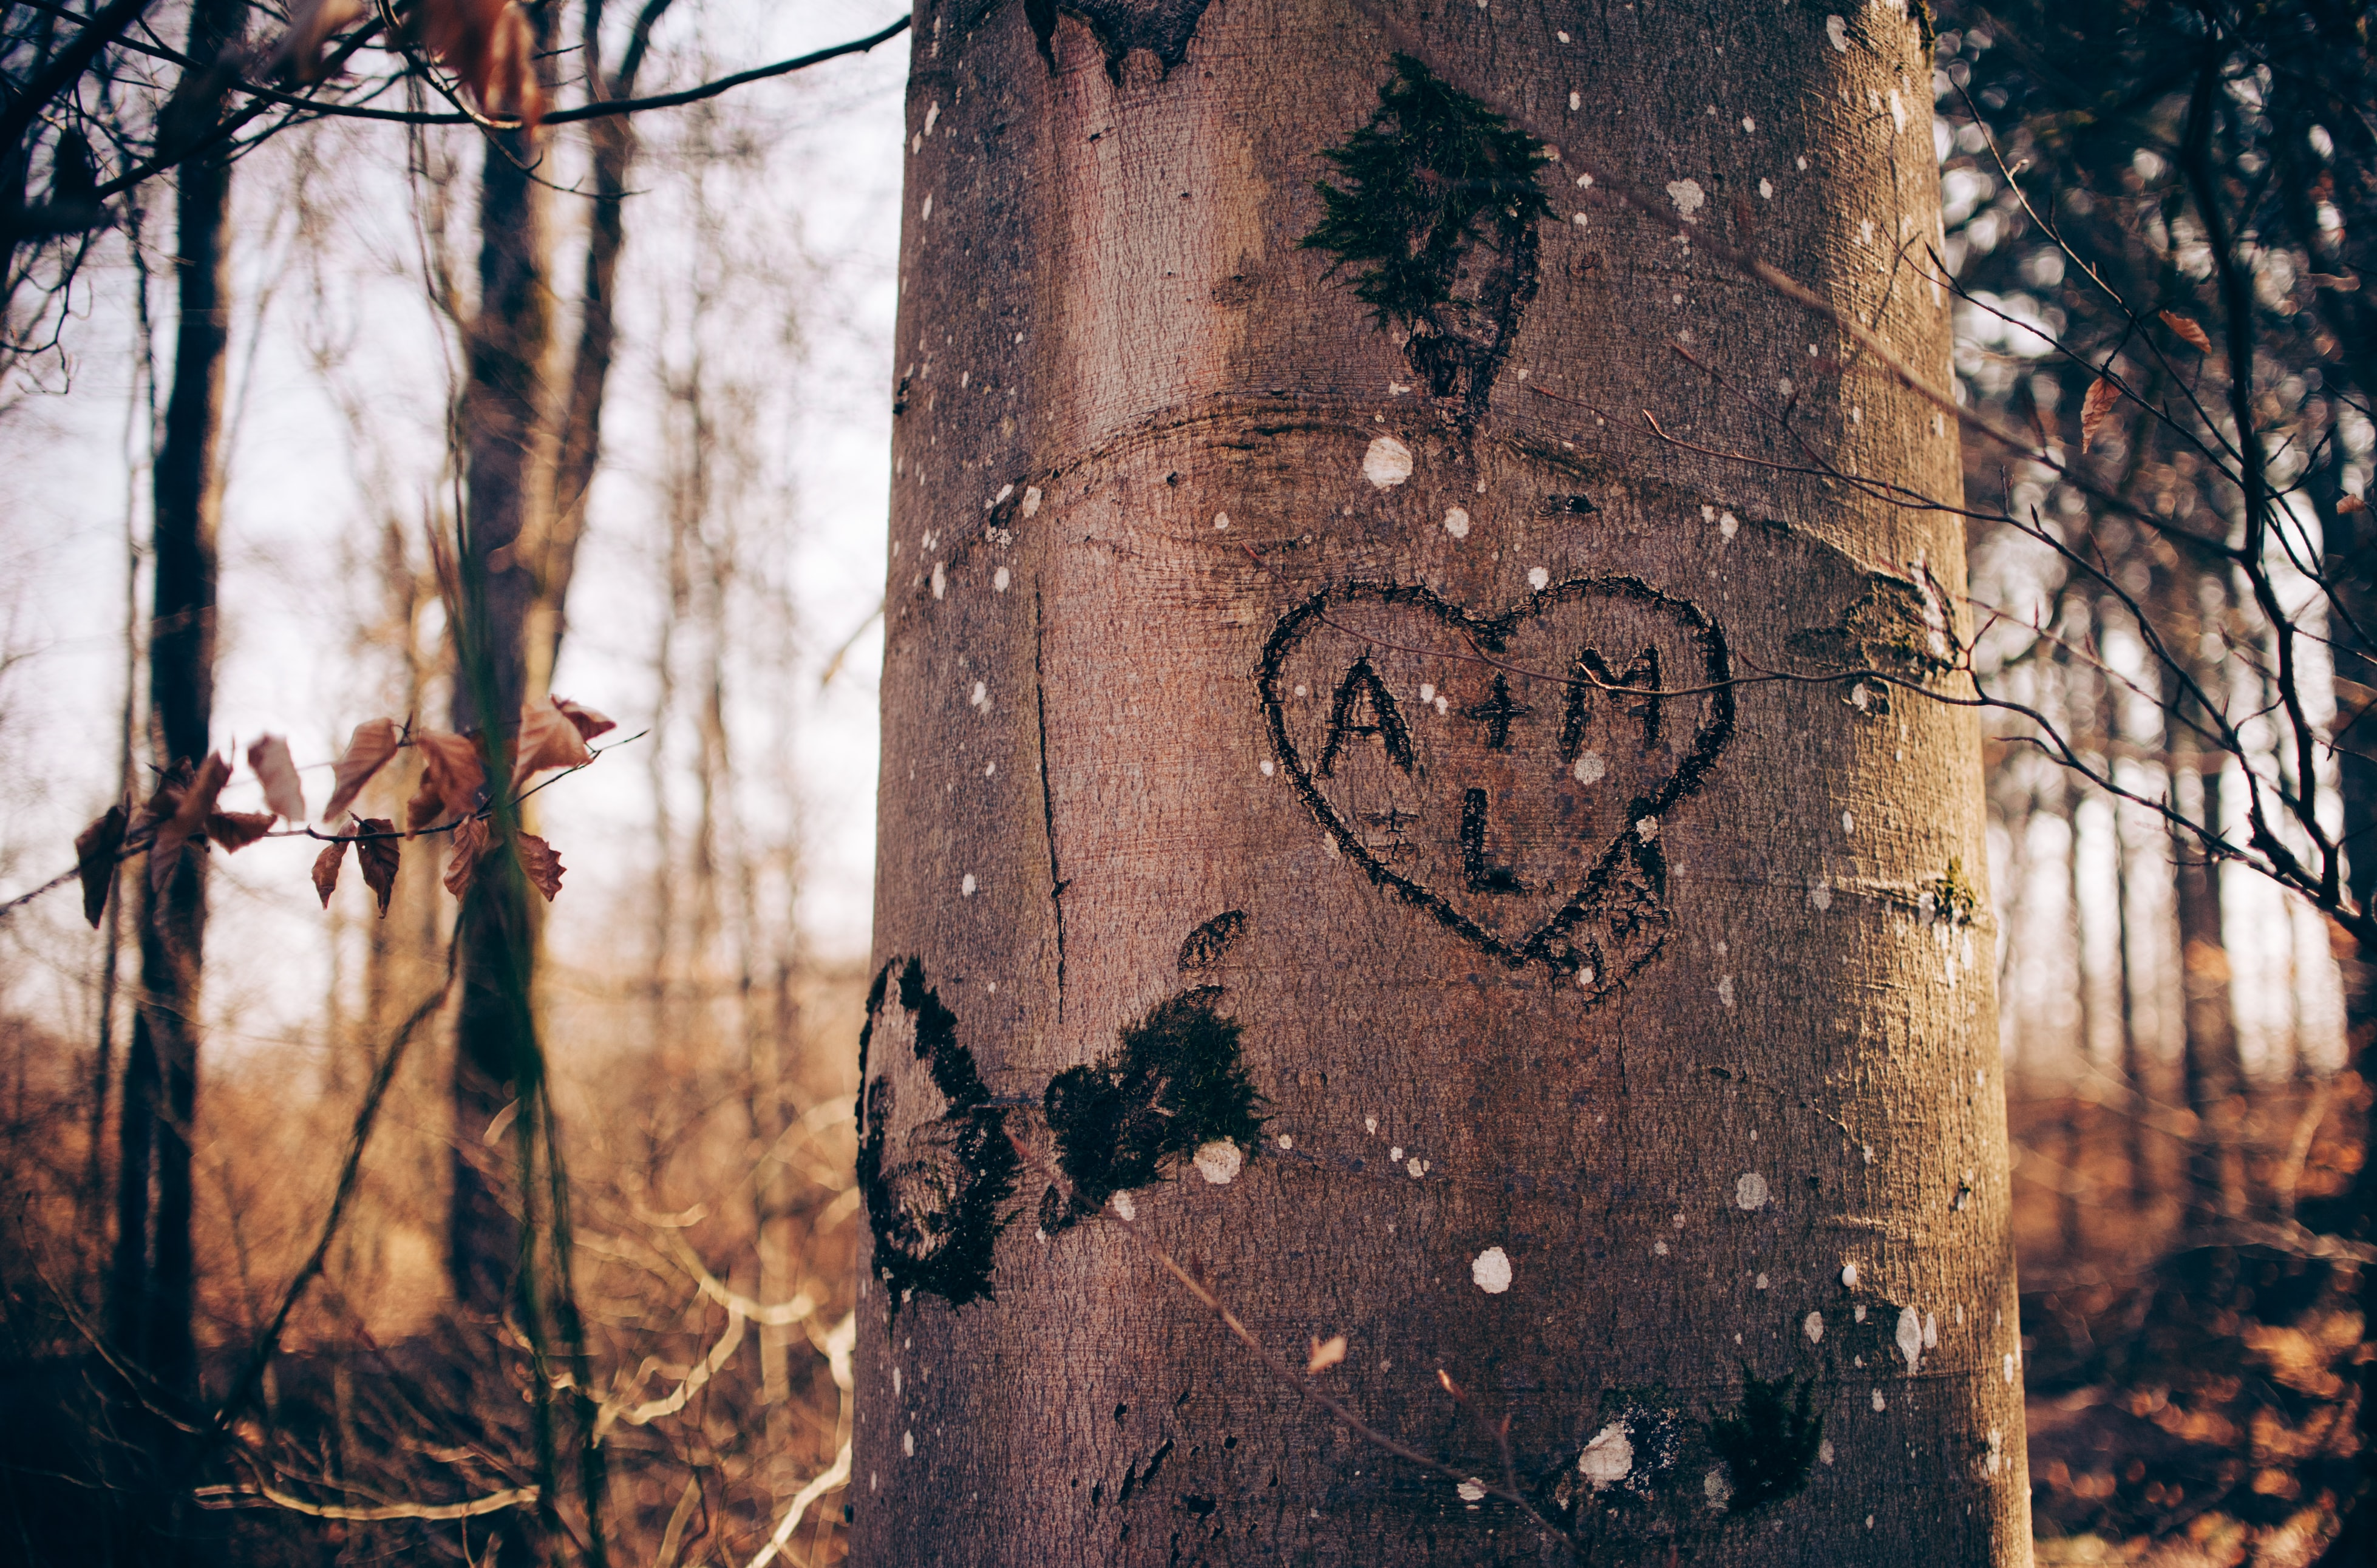 Heart and intitials carved into a tree truck